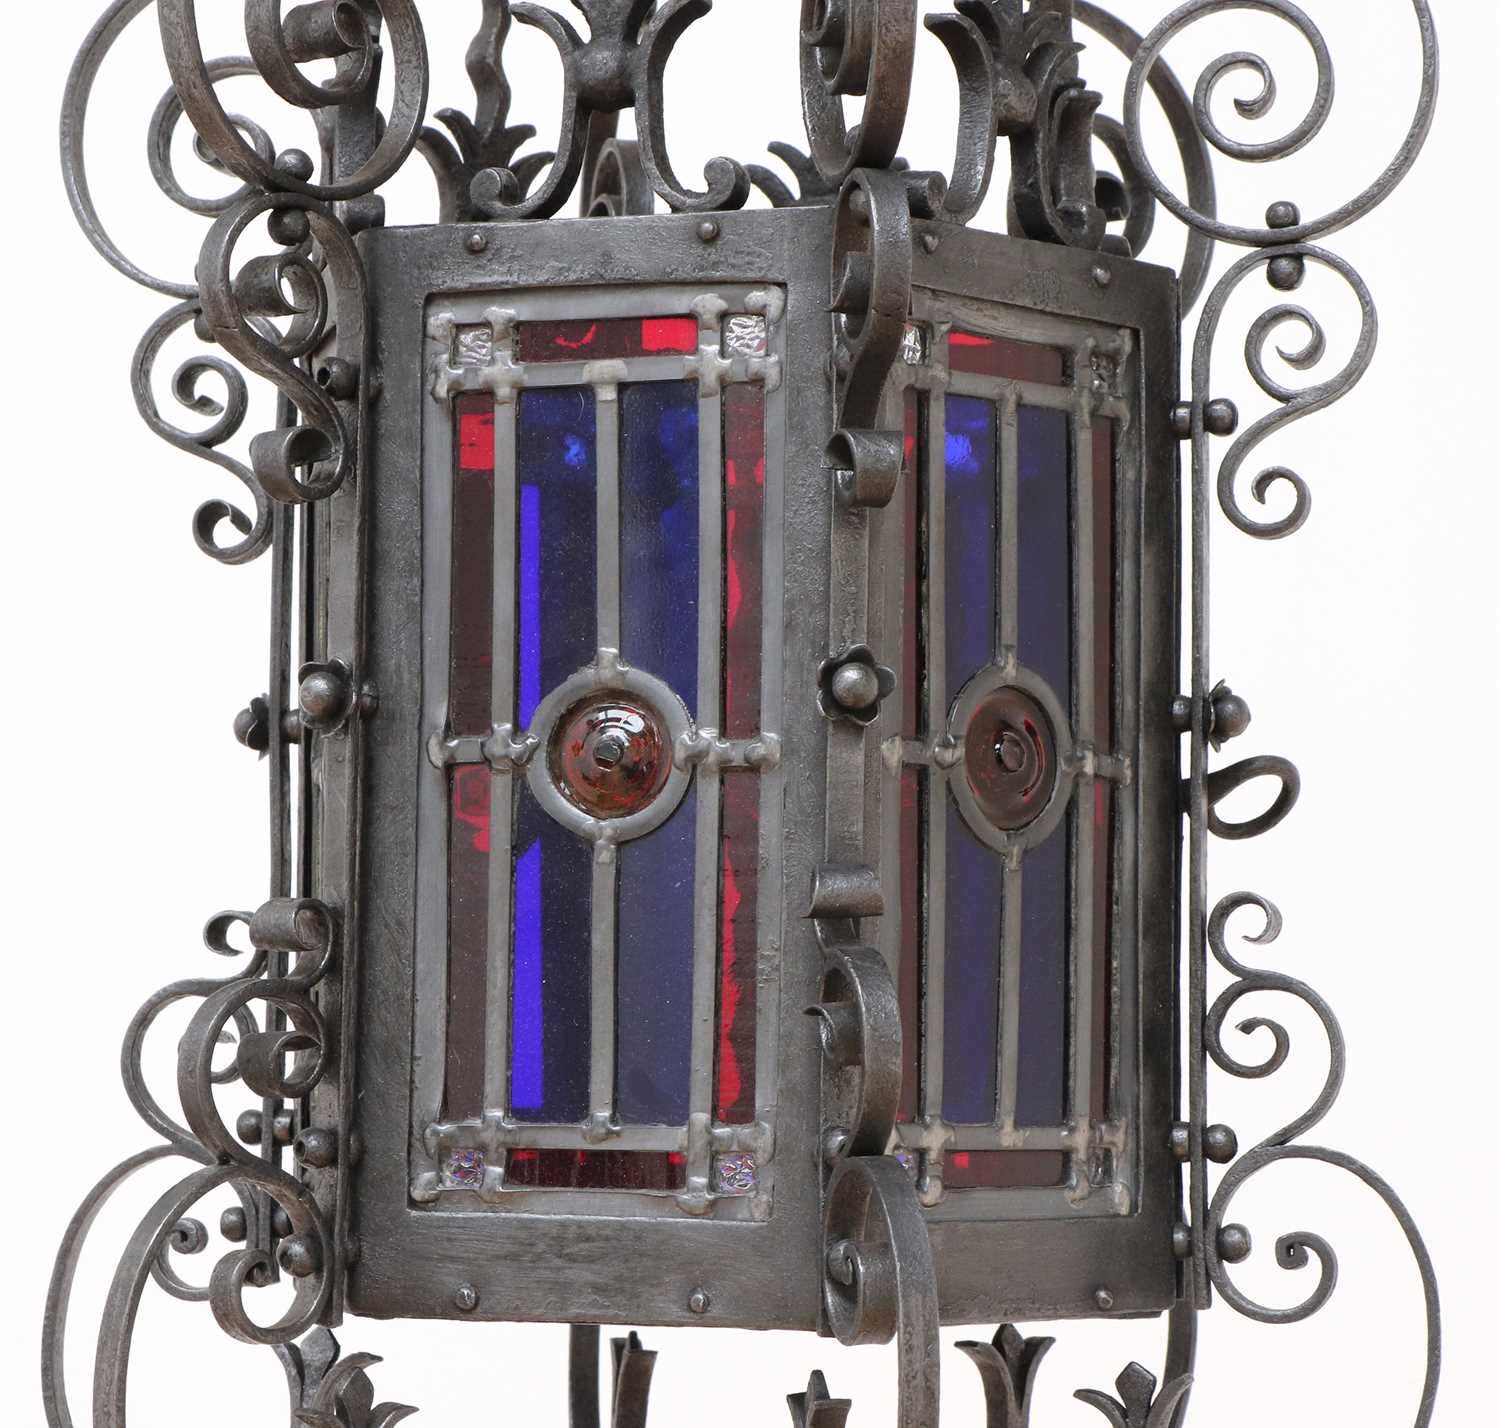 A wrought iron hall lantern in Gothic Revival style, - Image 2 of 4